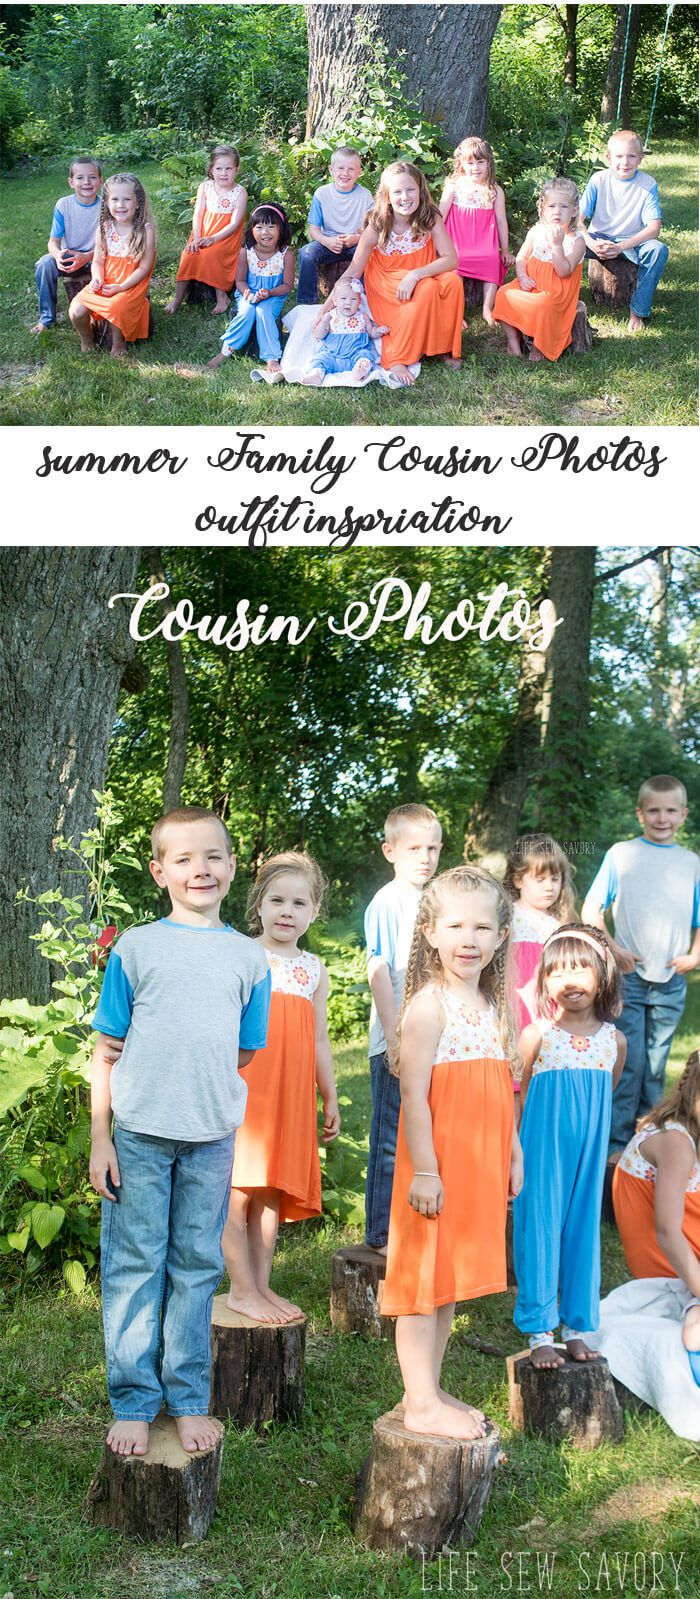 coordinating outfits for cousins from sewing inspiration from Life Sew Savory